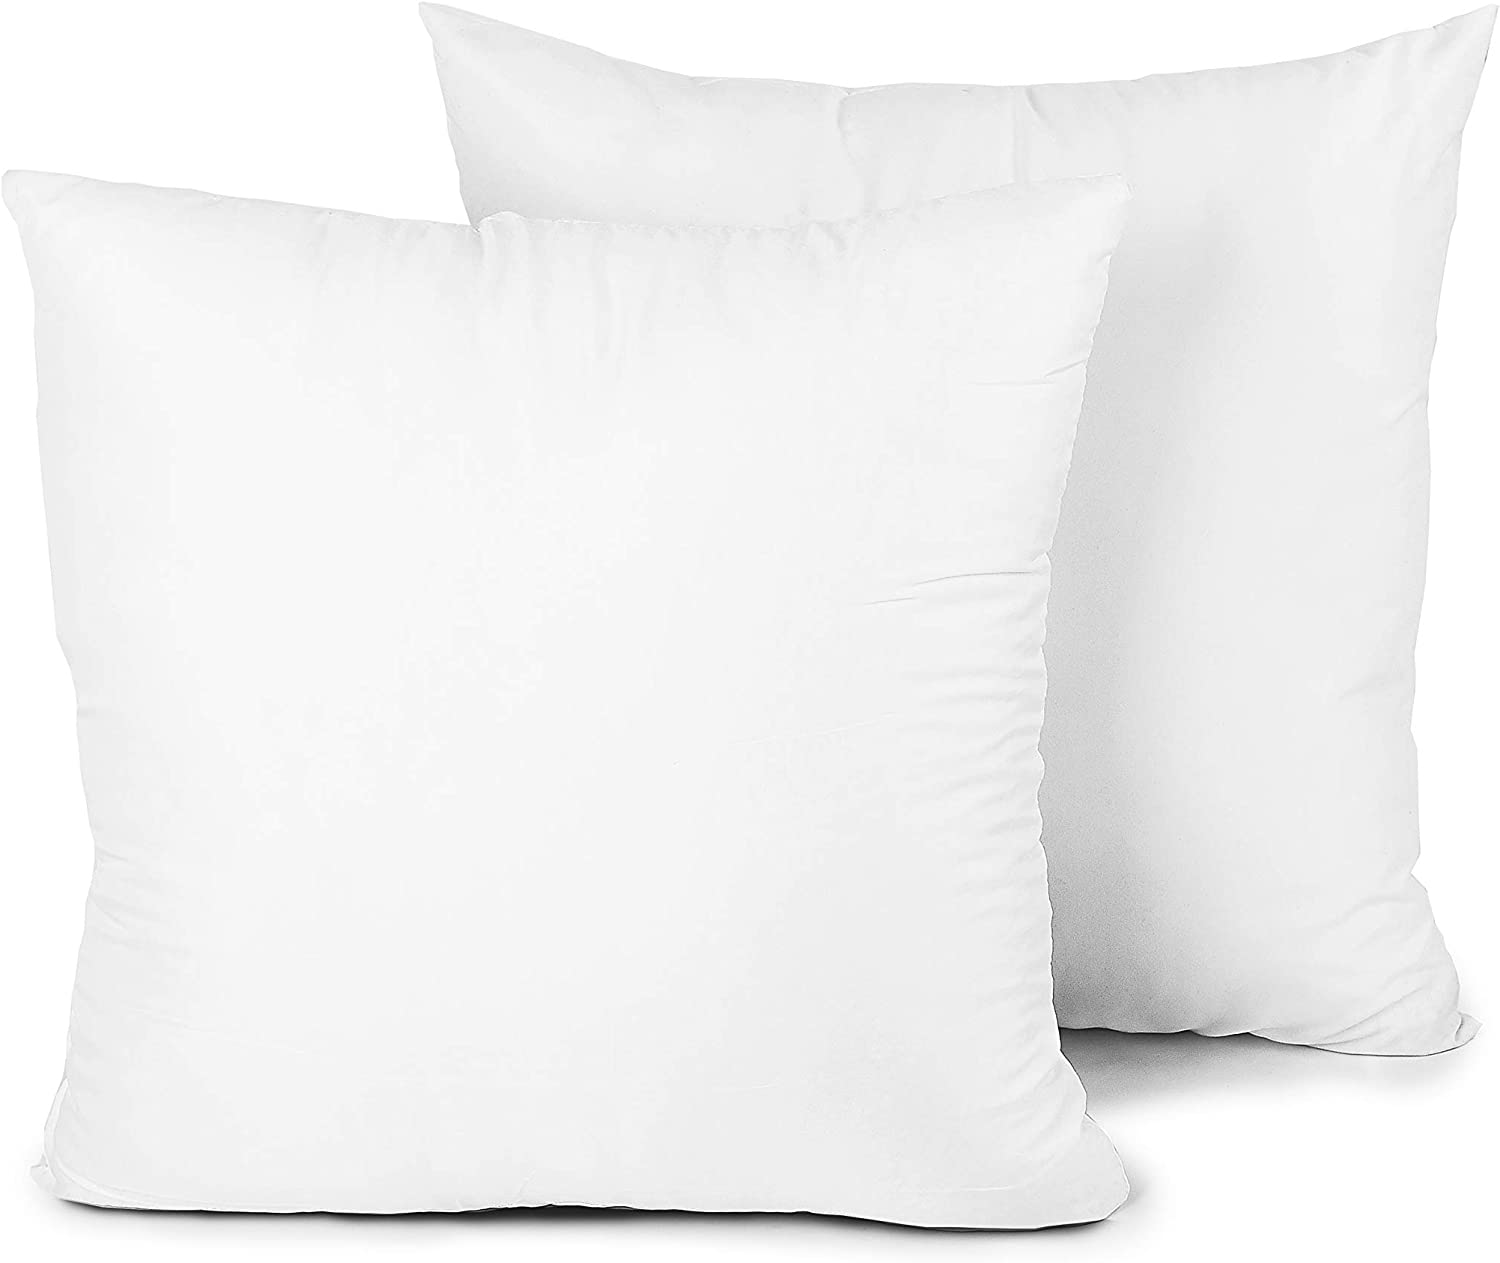 EDOW Throw Pillow Insert, Set of 2 Down Alternative Polyester Square Form Decorative Pillow, Cushion,Sham Stuffer. (White, 18x18): Home & Kitchen